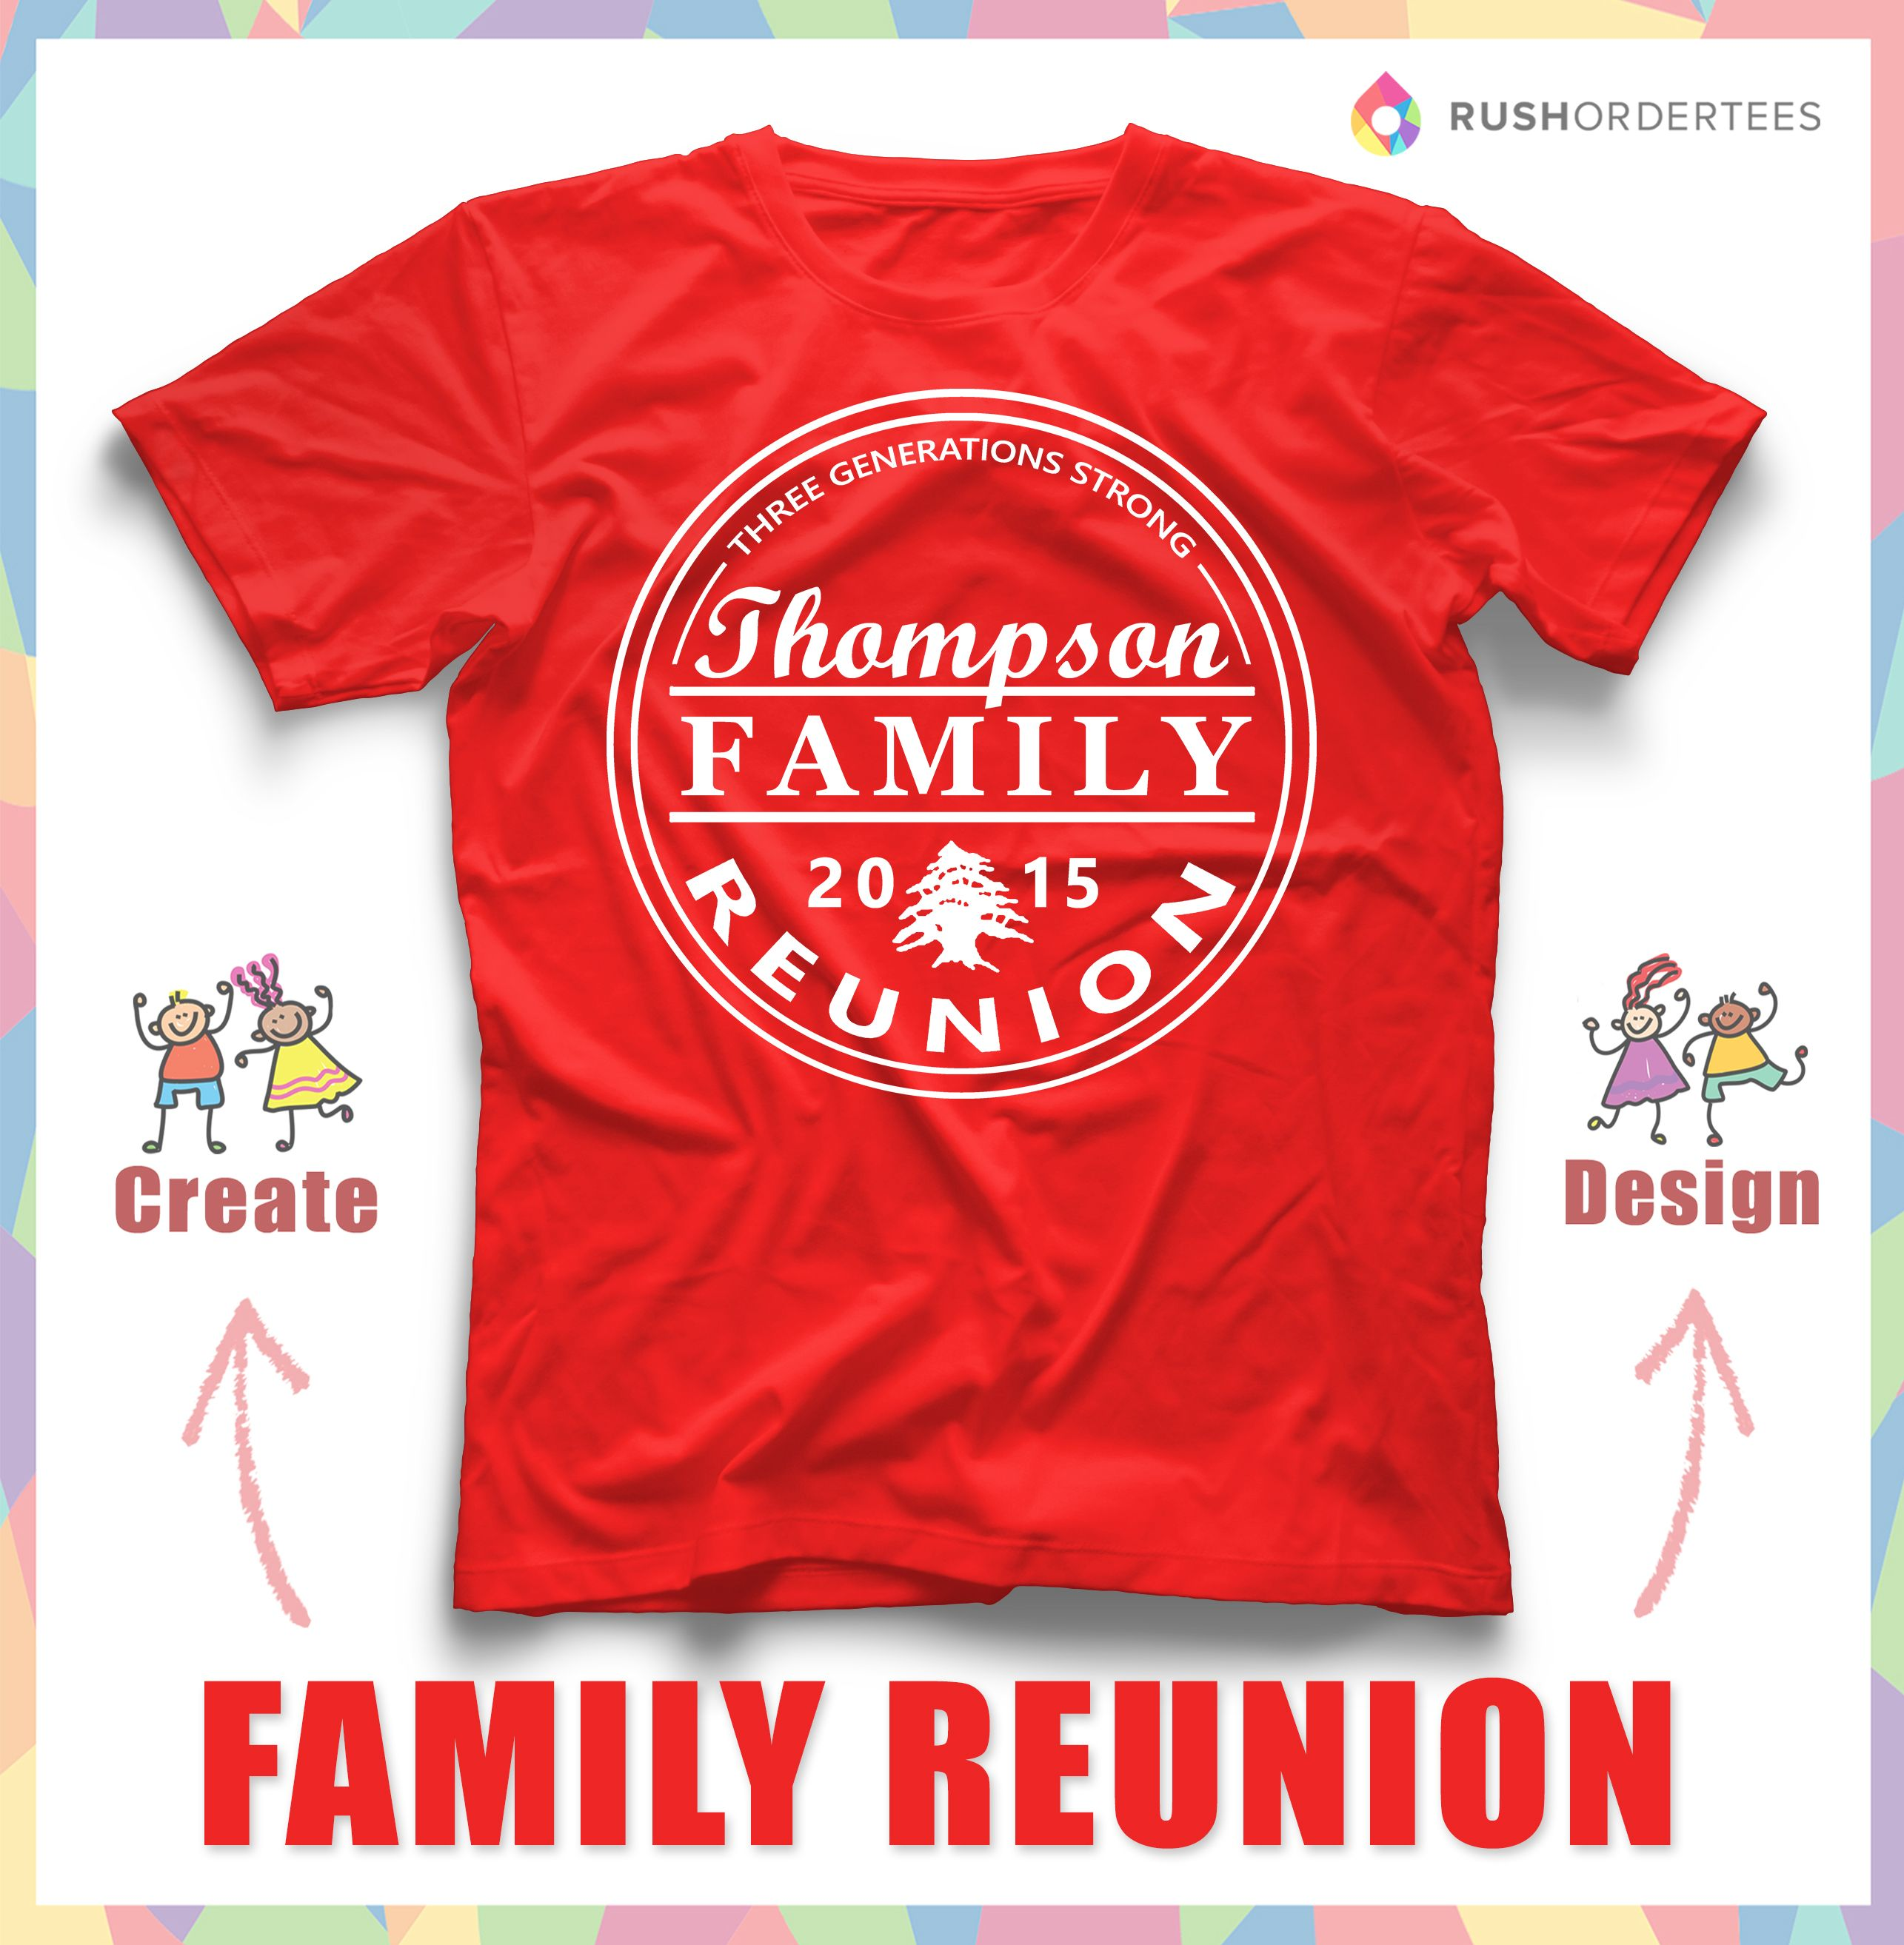 T Shirt Design Ideas Pinterest chat mignon shirt kitty chaton t shirt tee femmes hommes dames drole jaime chats amoureux des animaux t shirt moustaches visage copine mode Family Reunion T Shirt Design Ideas Create A Custom Reunion Shirt For Your Next